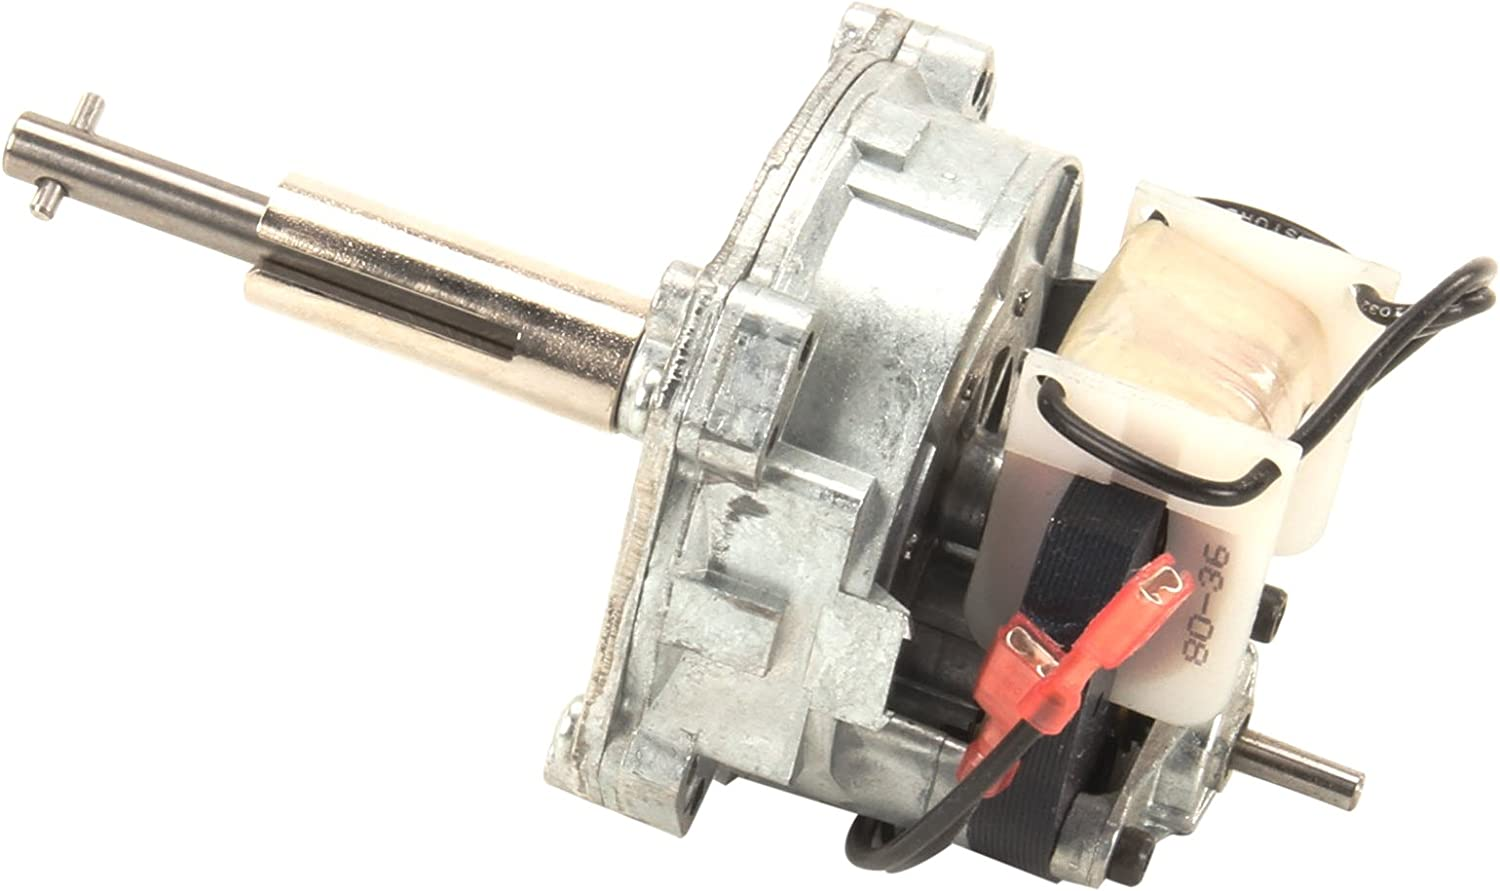 Wisco 0017596 Max 52% OFF Motor Drive Price reduction